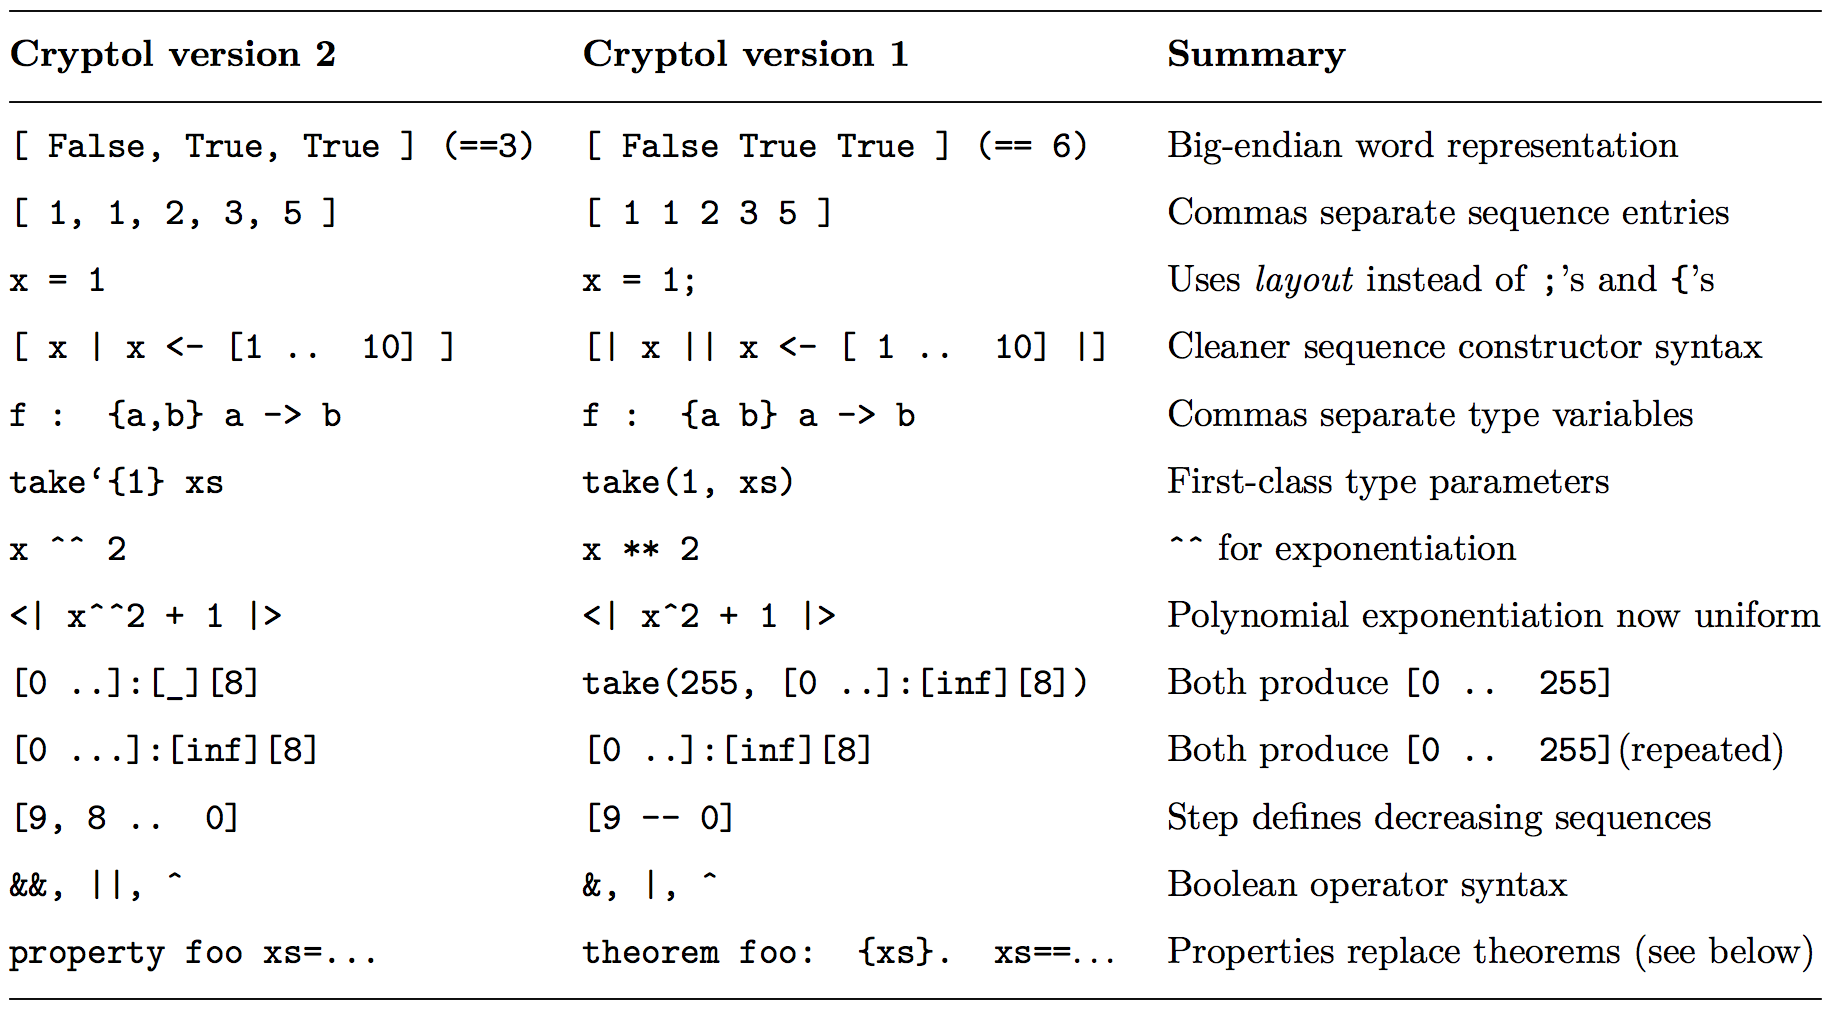 Summary of Changes from Cryptol version 1 to Cryptol version 2